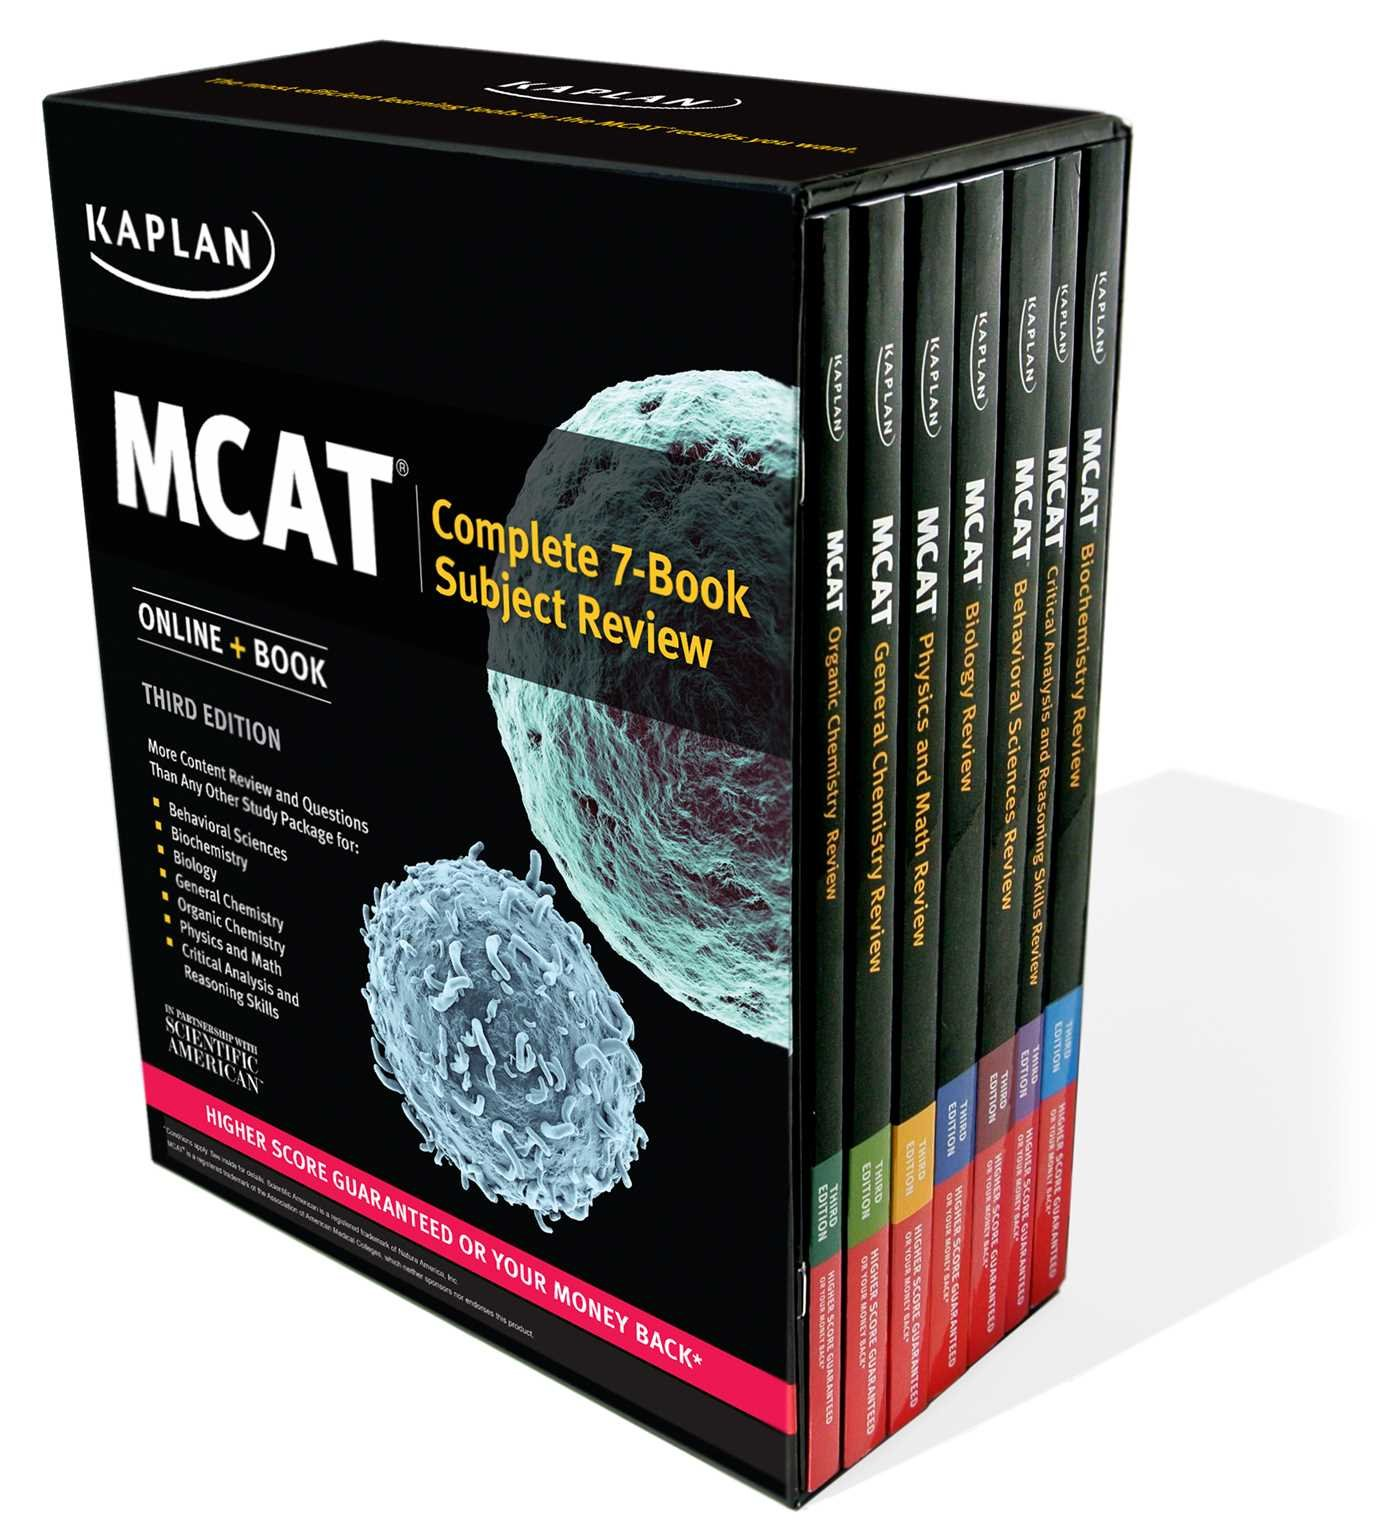 MCAT Complete 7-Book Subject Review: Online + Book: Kaplan Test Prep:  9781506205595: Books - Amazon.ca